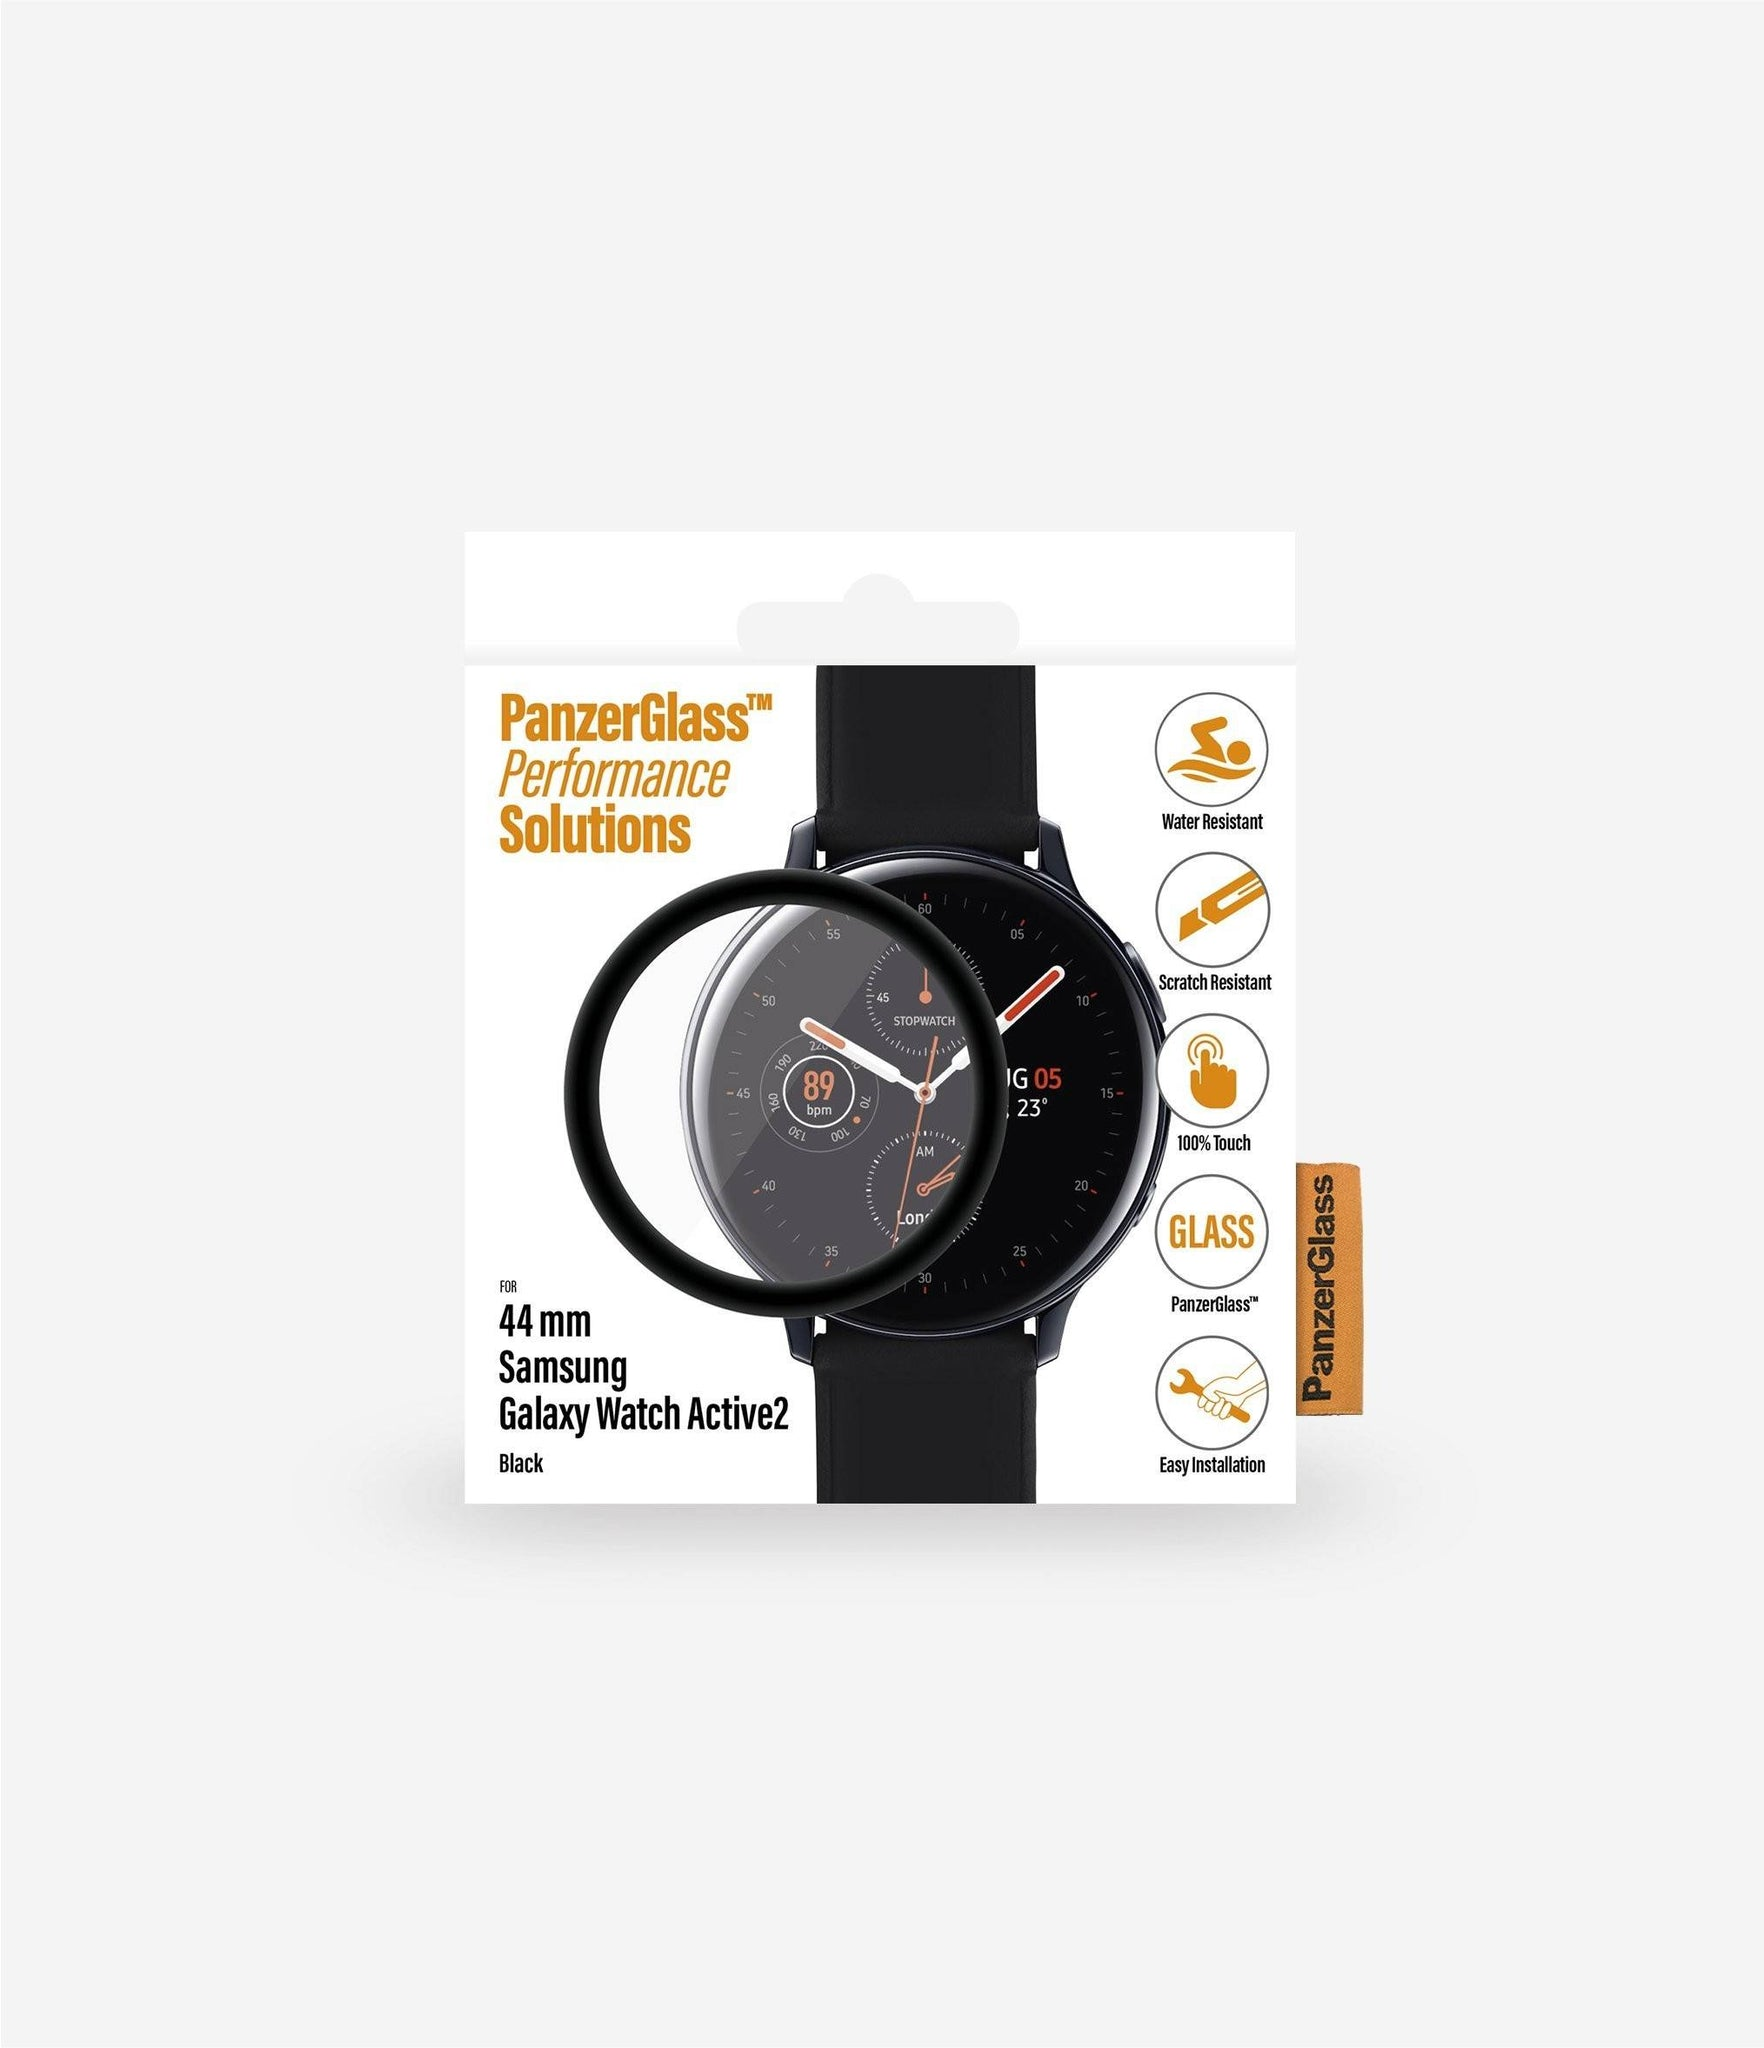 PanzerGlass - Samsung Galaxy Watch Active 2 Screen Protector 44 mm - Clear, PNZ7207 - 2071MALL